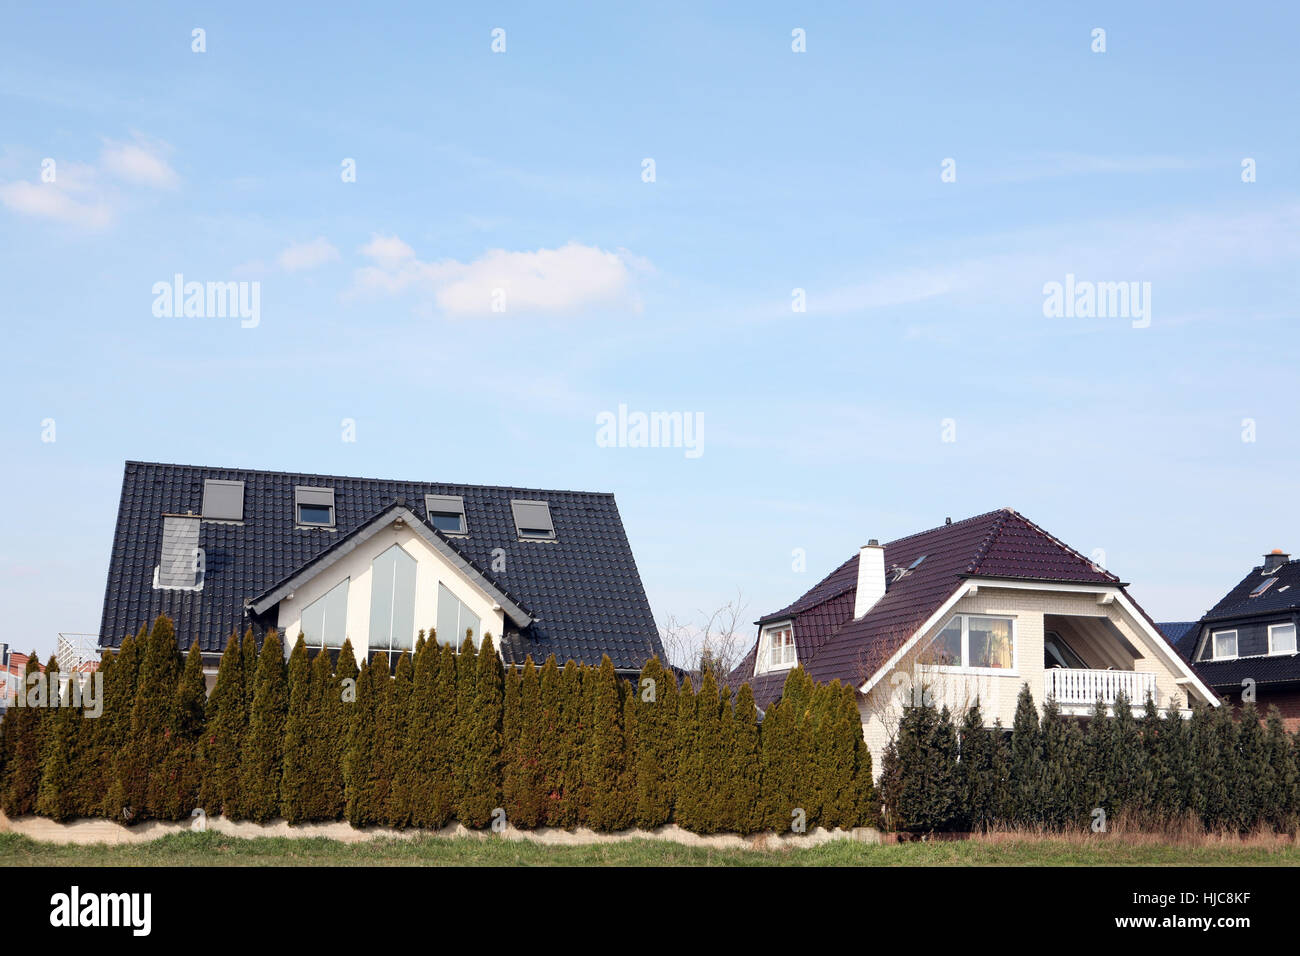 gartenbegrenzung stock photos & gartenbegrenzung stock images - alamy